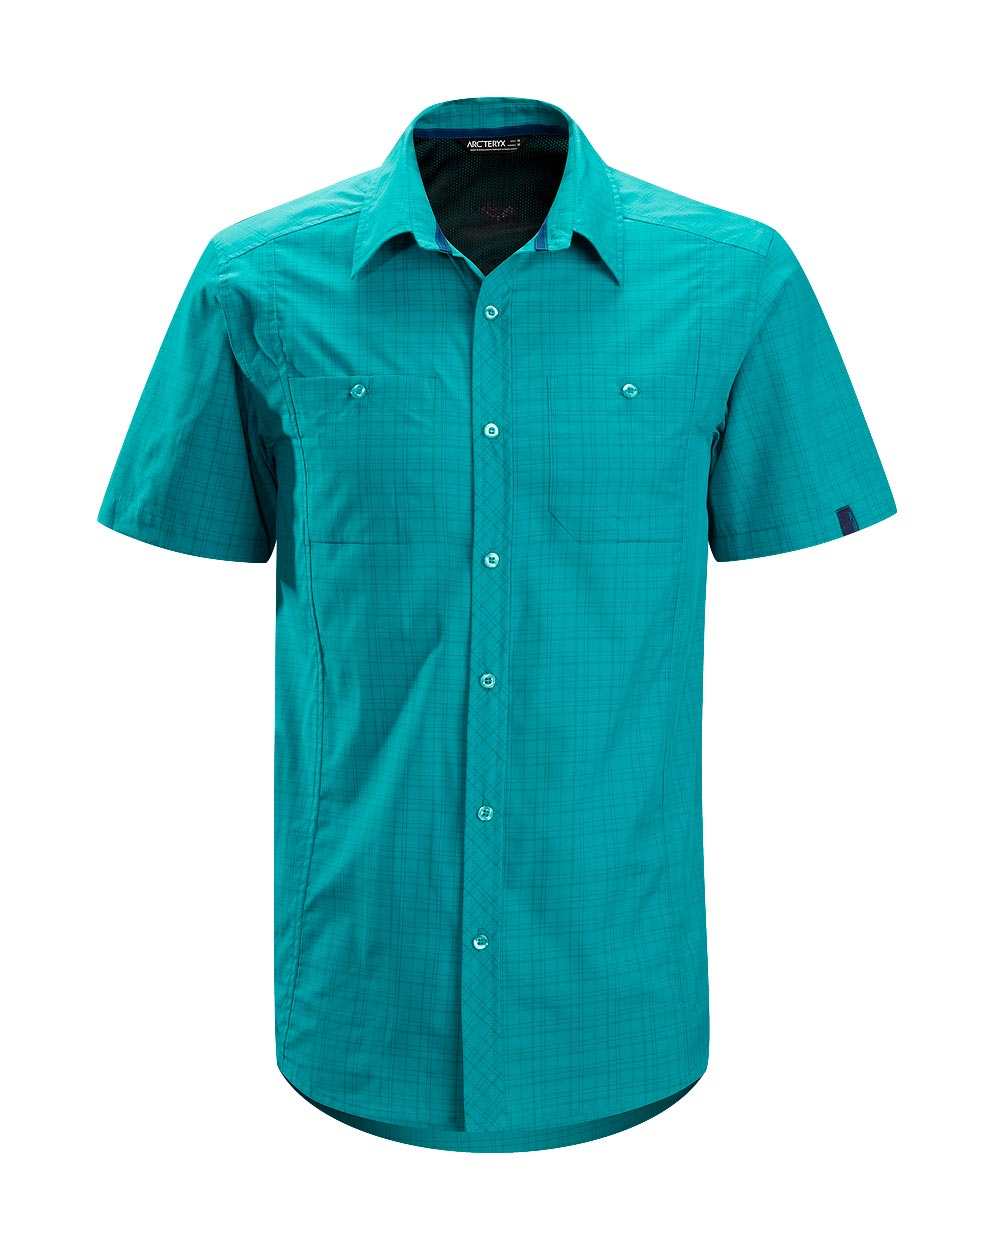 Arcteryx Blue Grotto Borderline Shirt SS - New